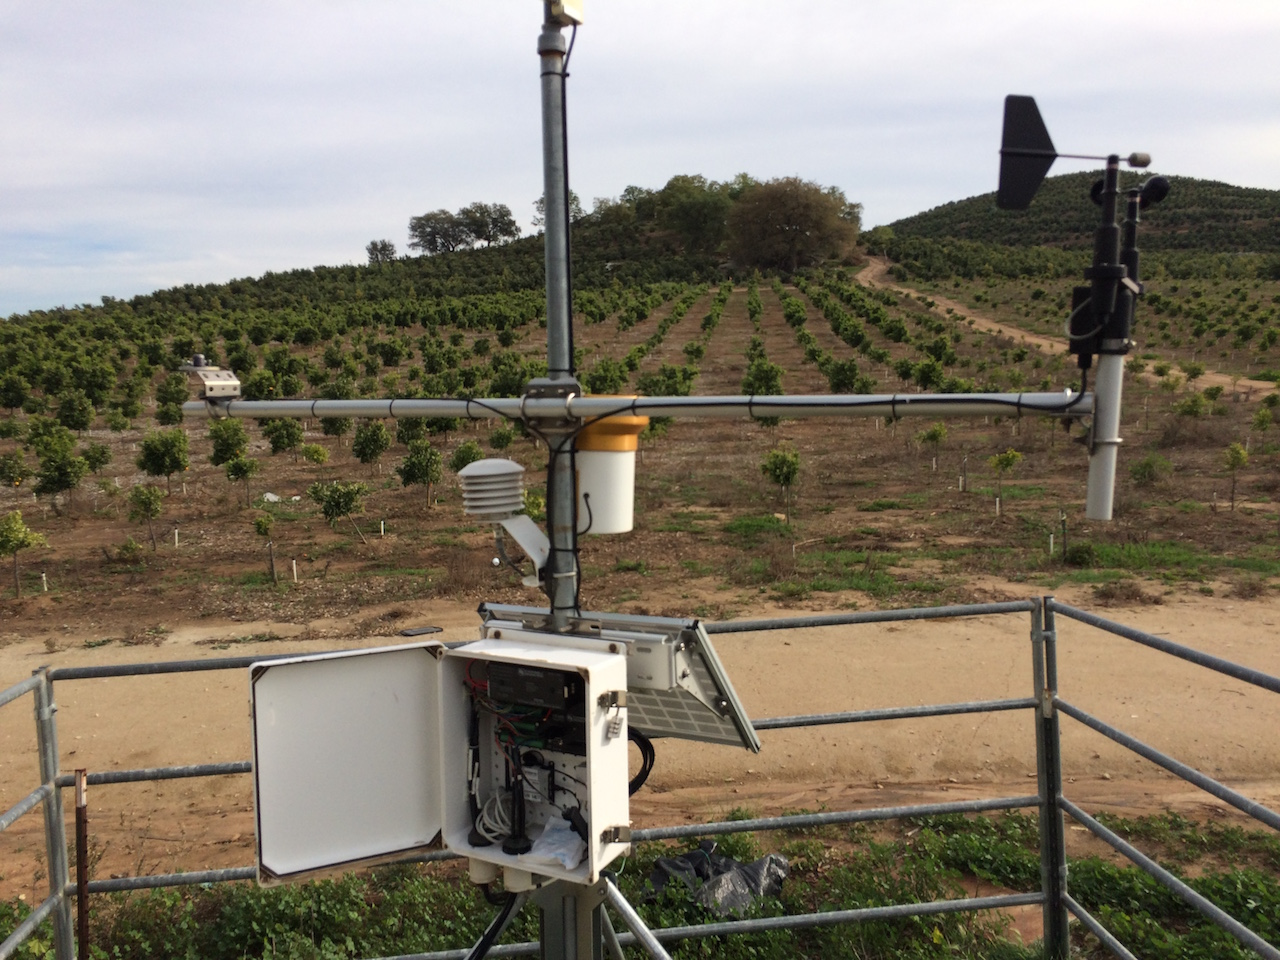 Valarm Tools Cloud with Campbell Scientific and Vaisala Sensors for Remotely Monitoring Weather and Wild Fire Risk 2